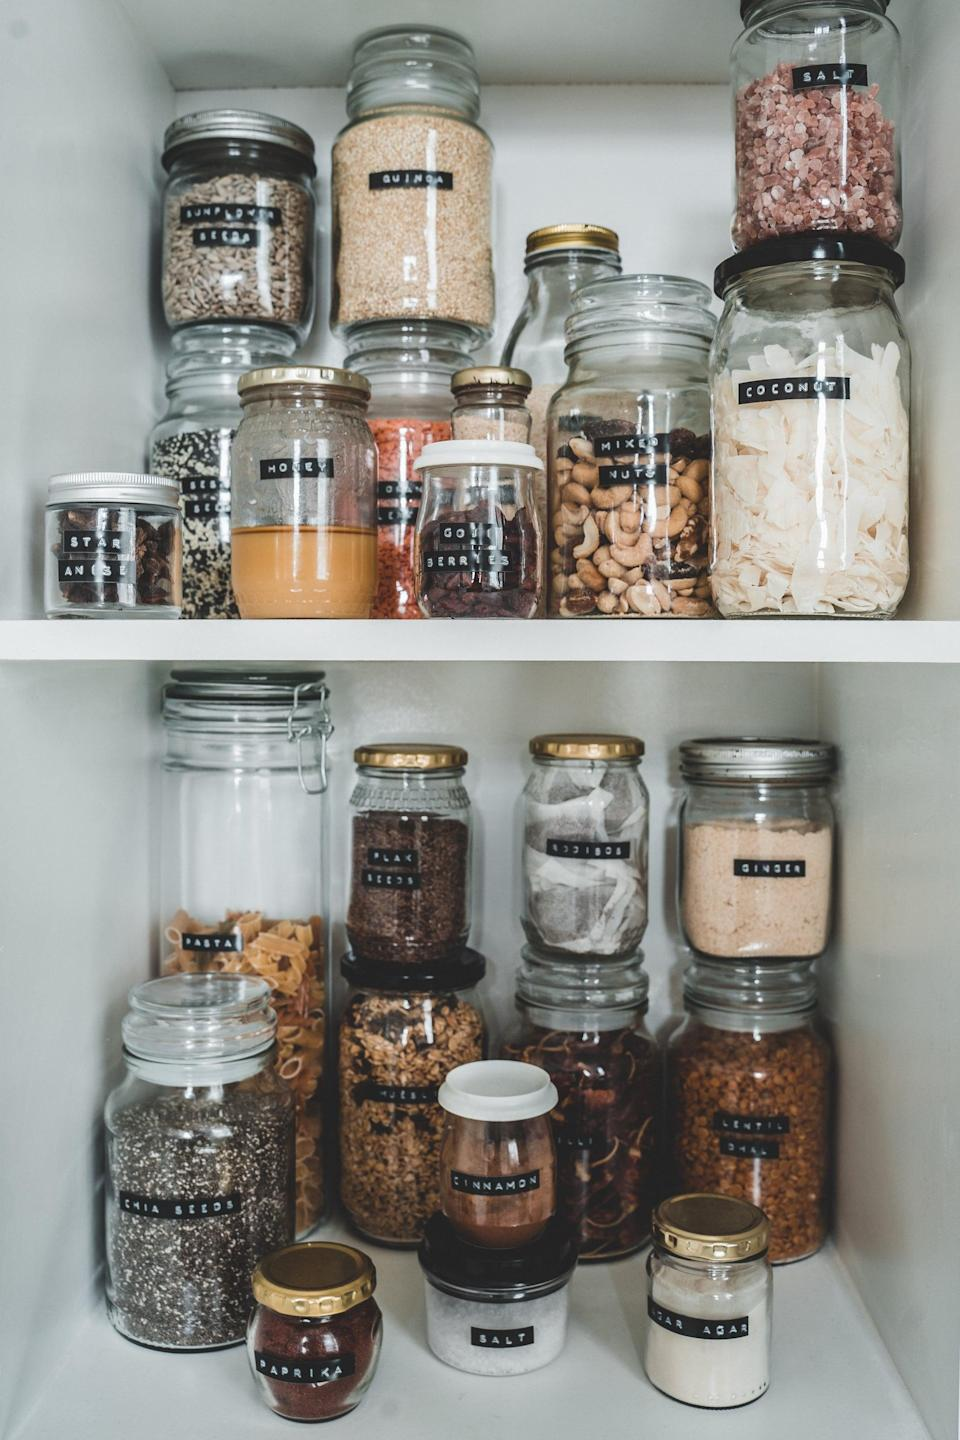 <p>Labeling is not only aesthetically pleasing, it also helps to maintain organization. When your containers, bins, and even shelves are labeled, you can easily find what you're looking for and put items back accordingly.</p>